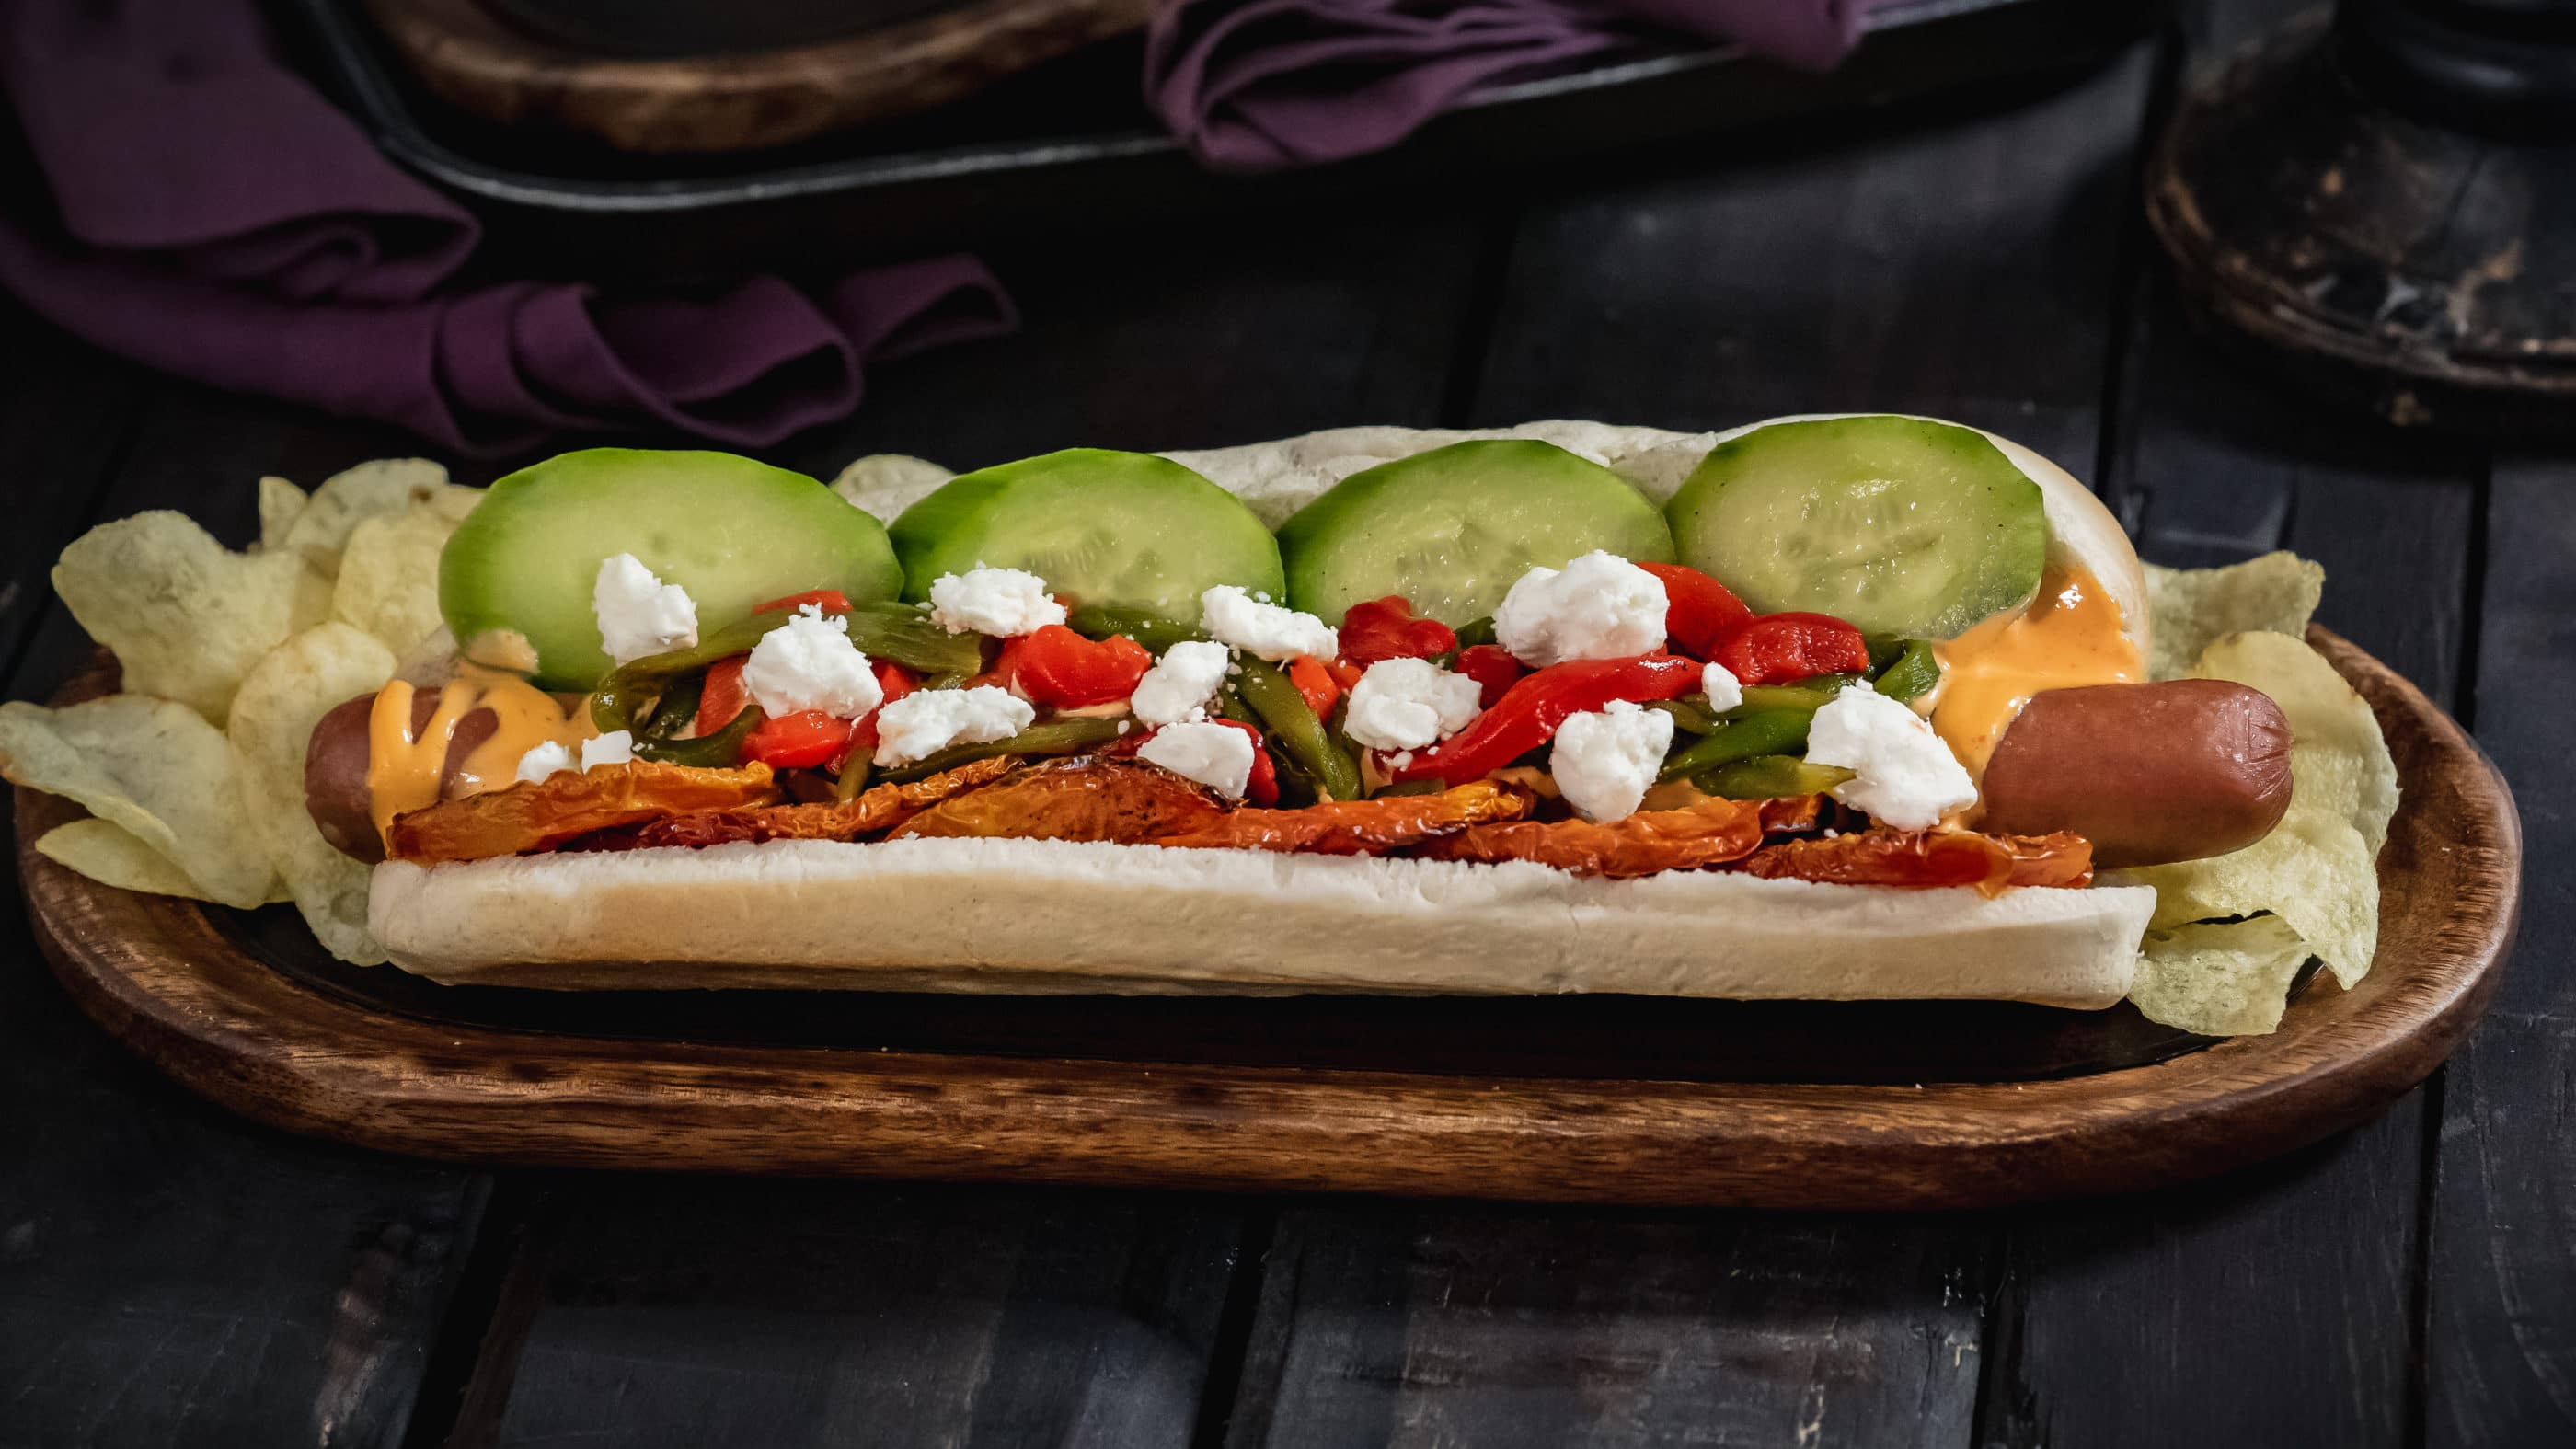 Hades-inspired hot dog with neatly-placed toppings on a wood board.